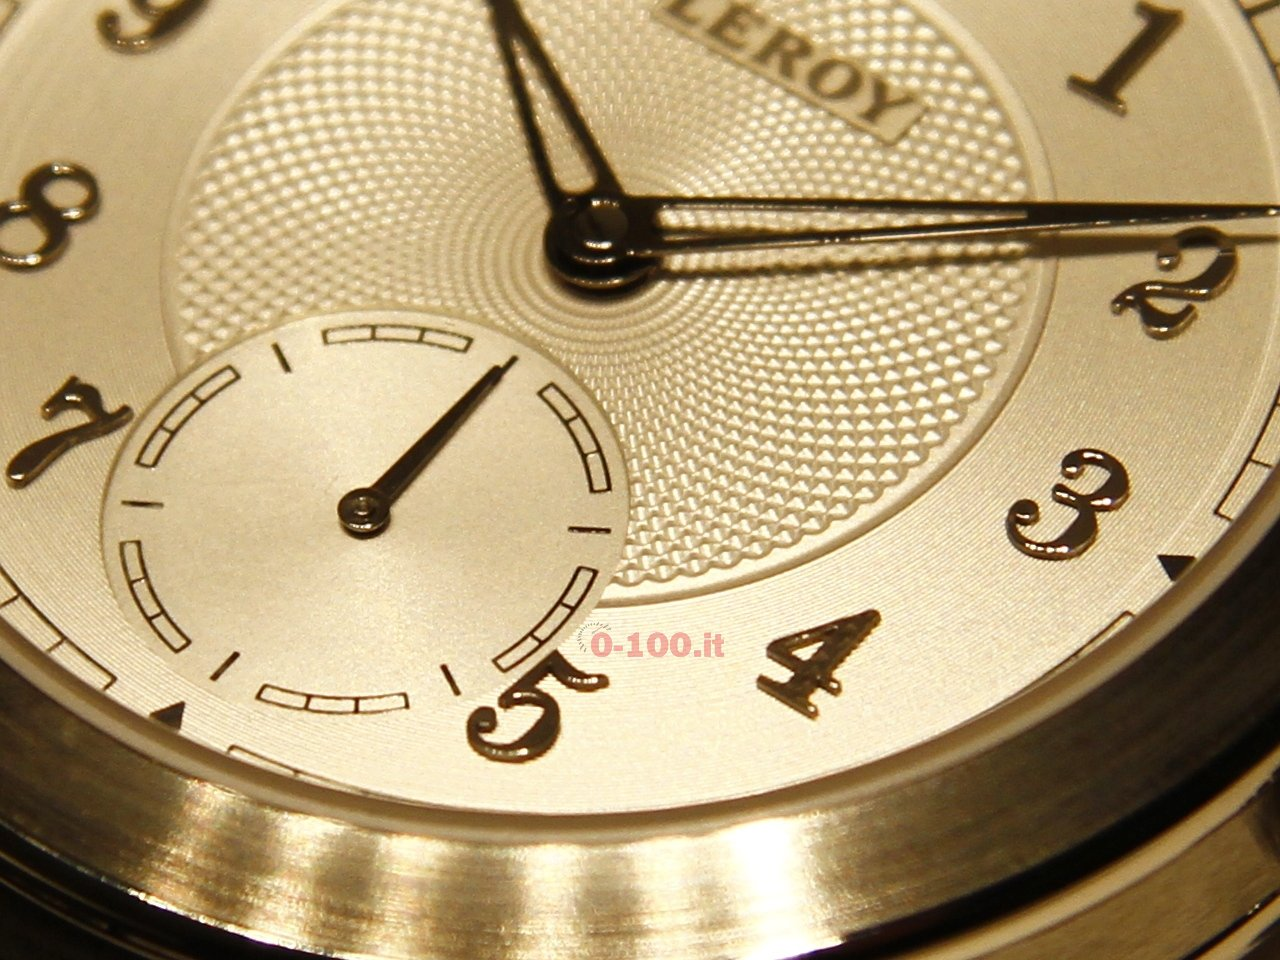 baselworld-2015_leroy-chronometer-l200-0-100-8